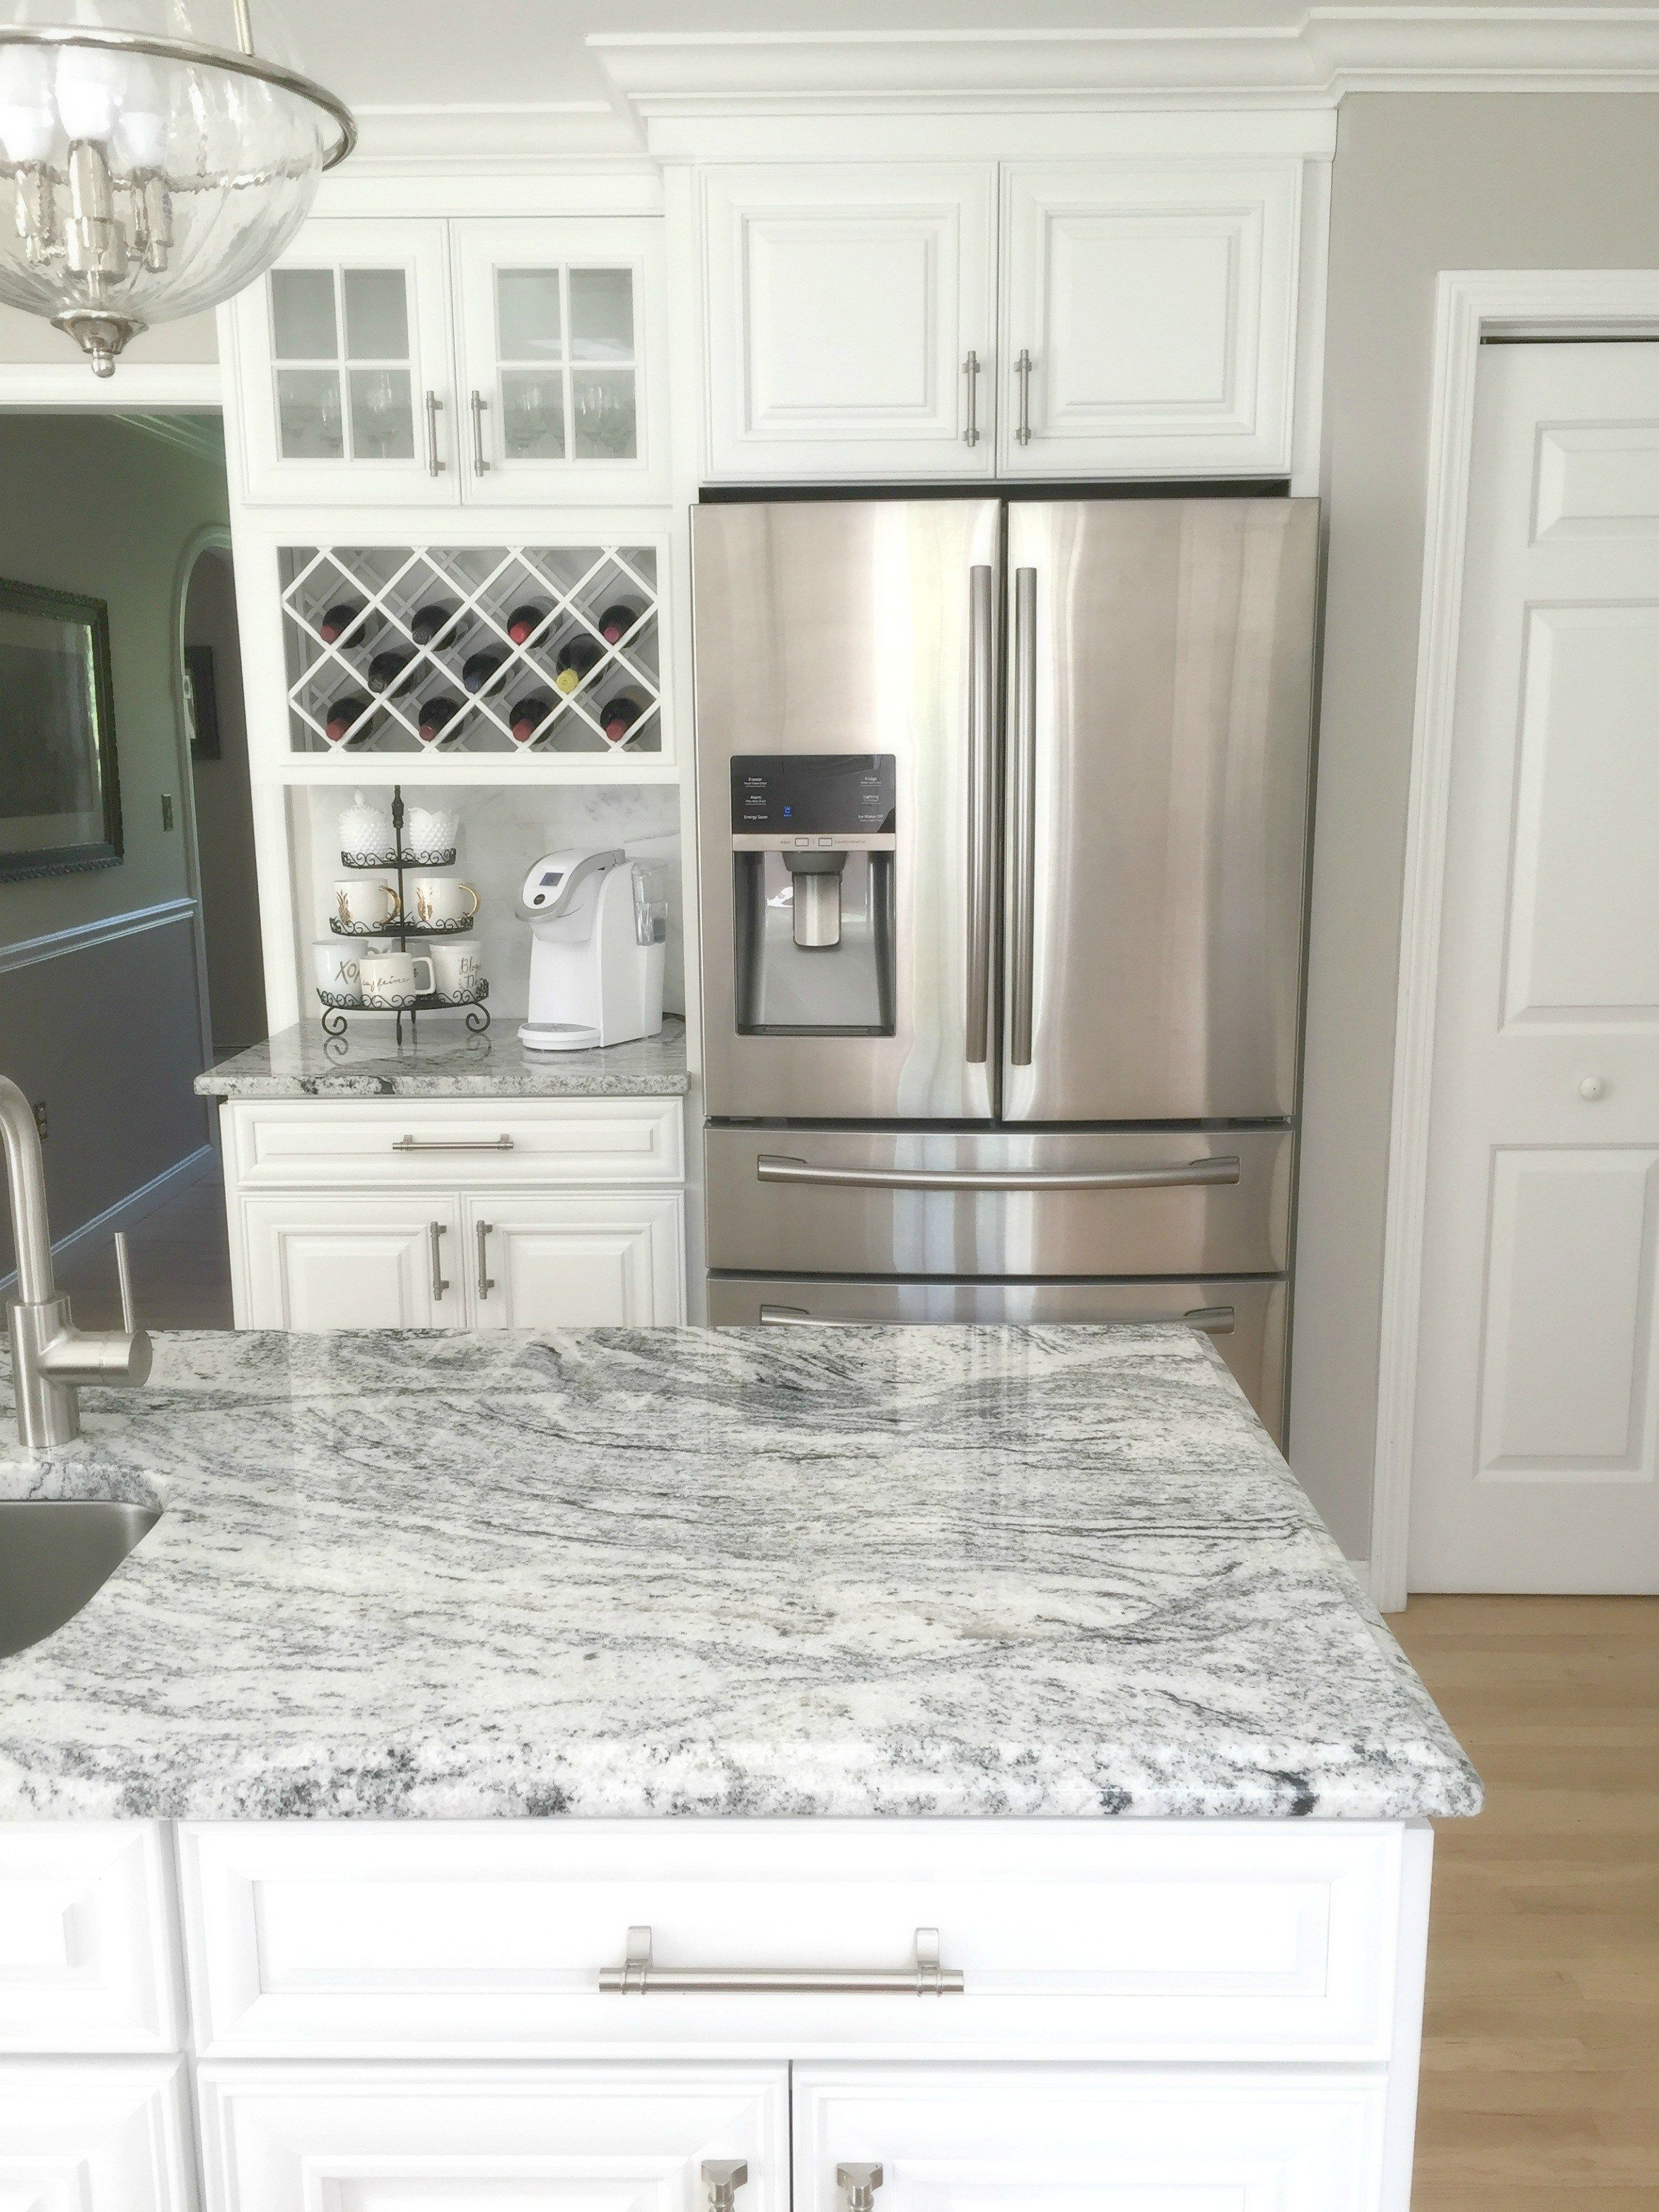 Transitional kitchens must haves viscon white granite for White cabinets granite countertops